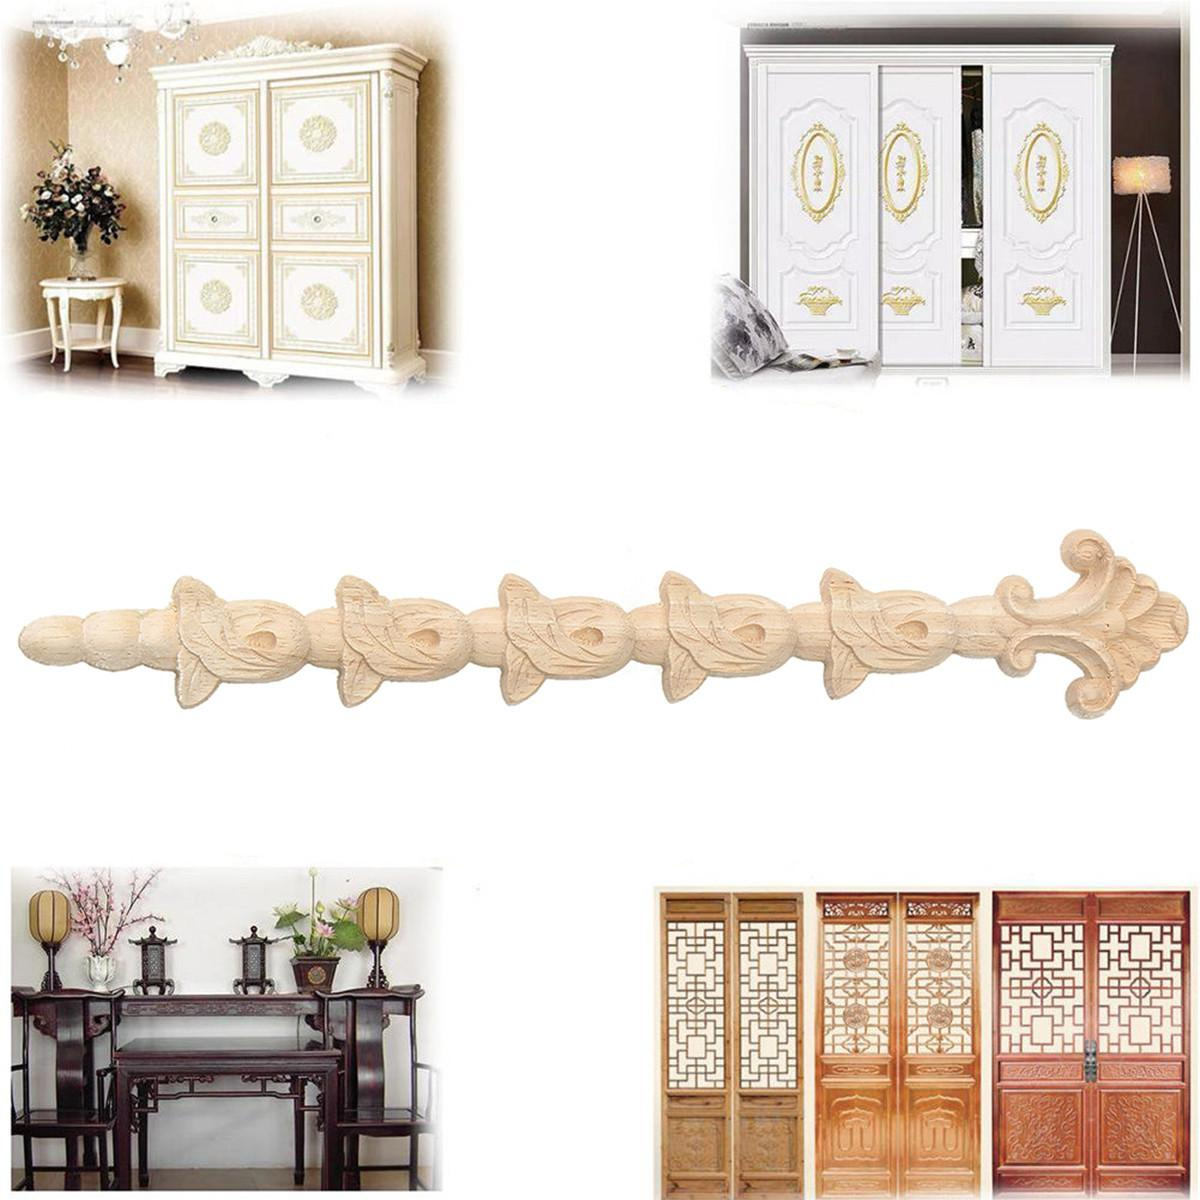 Wood Carving Applique Corner Onlay Unpainted Frame Decal